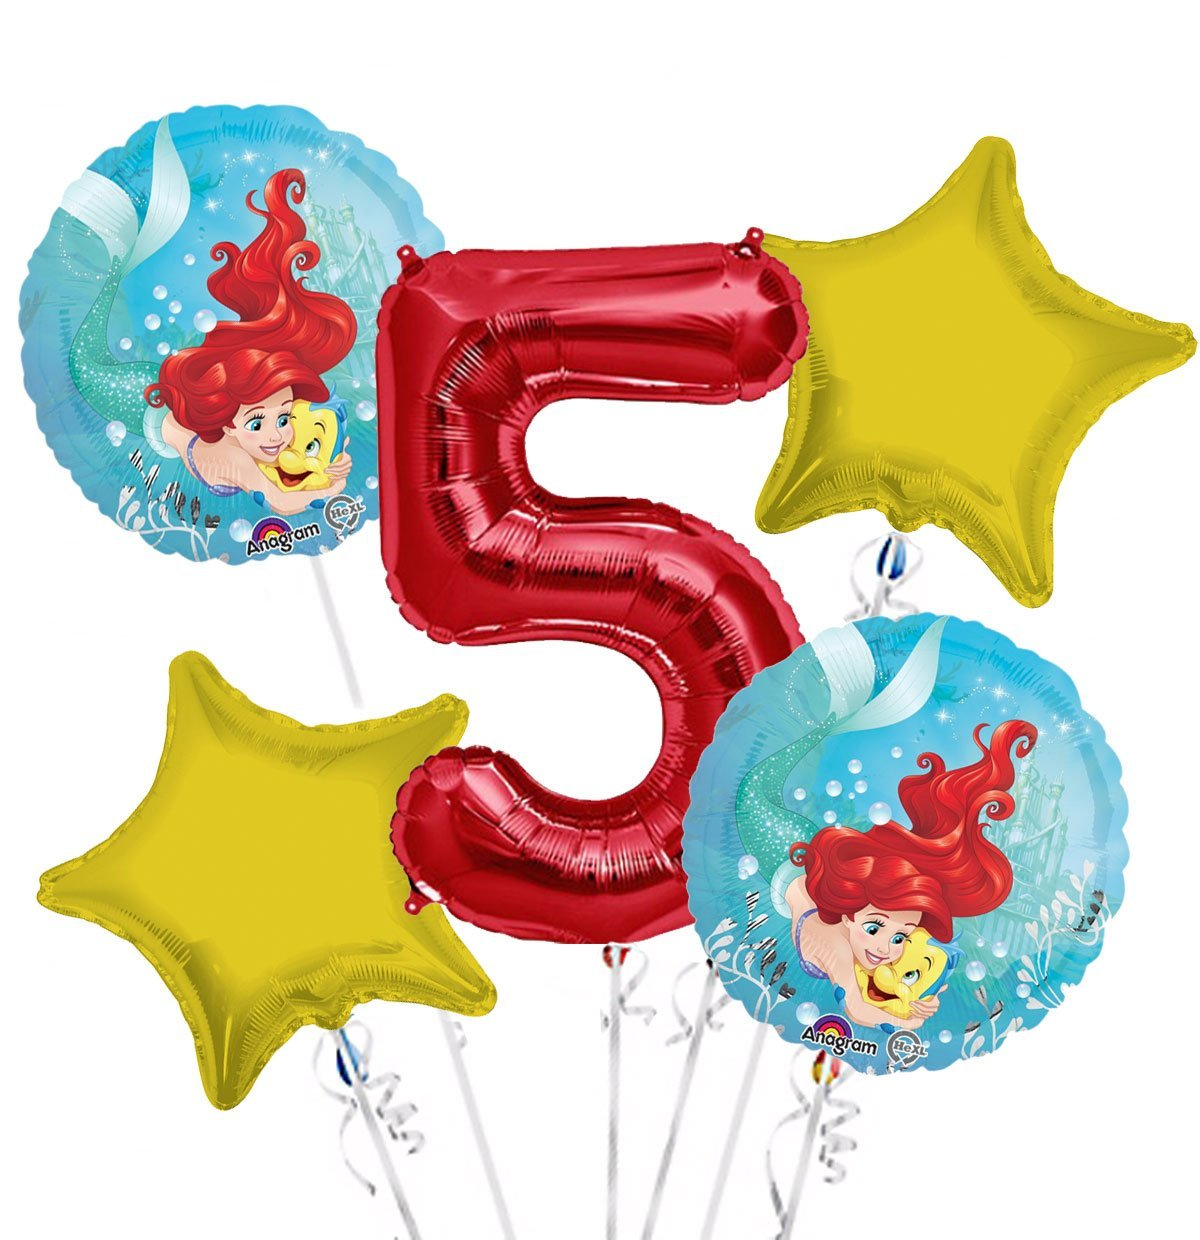 Ariel Balloon Bouquet 5th Birthday 5 pcs - Party Supplies, 1 Giant Number 5 Balloon, 34in By Viva Party